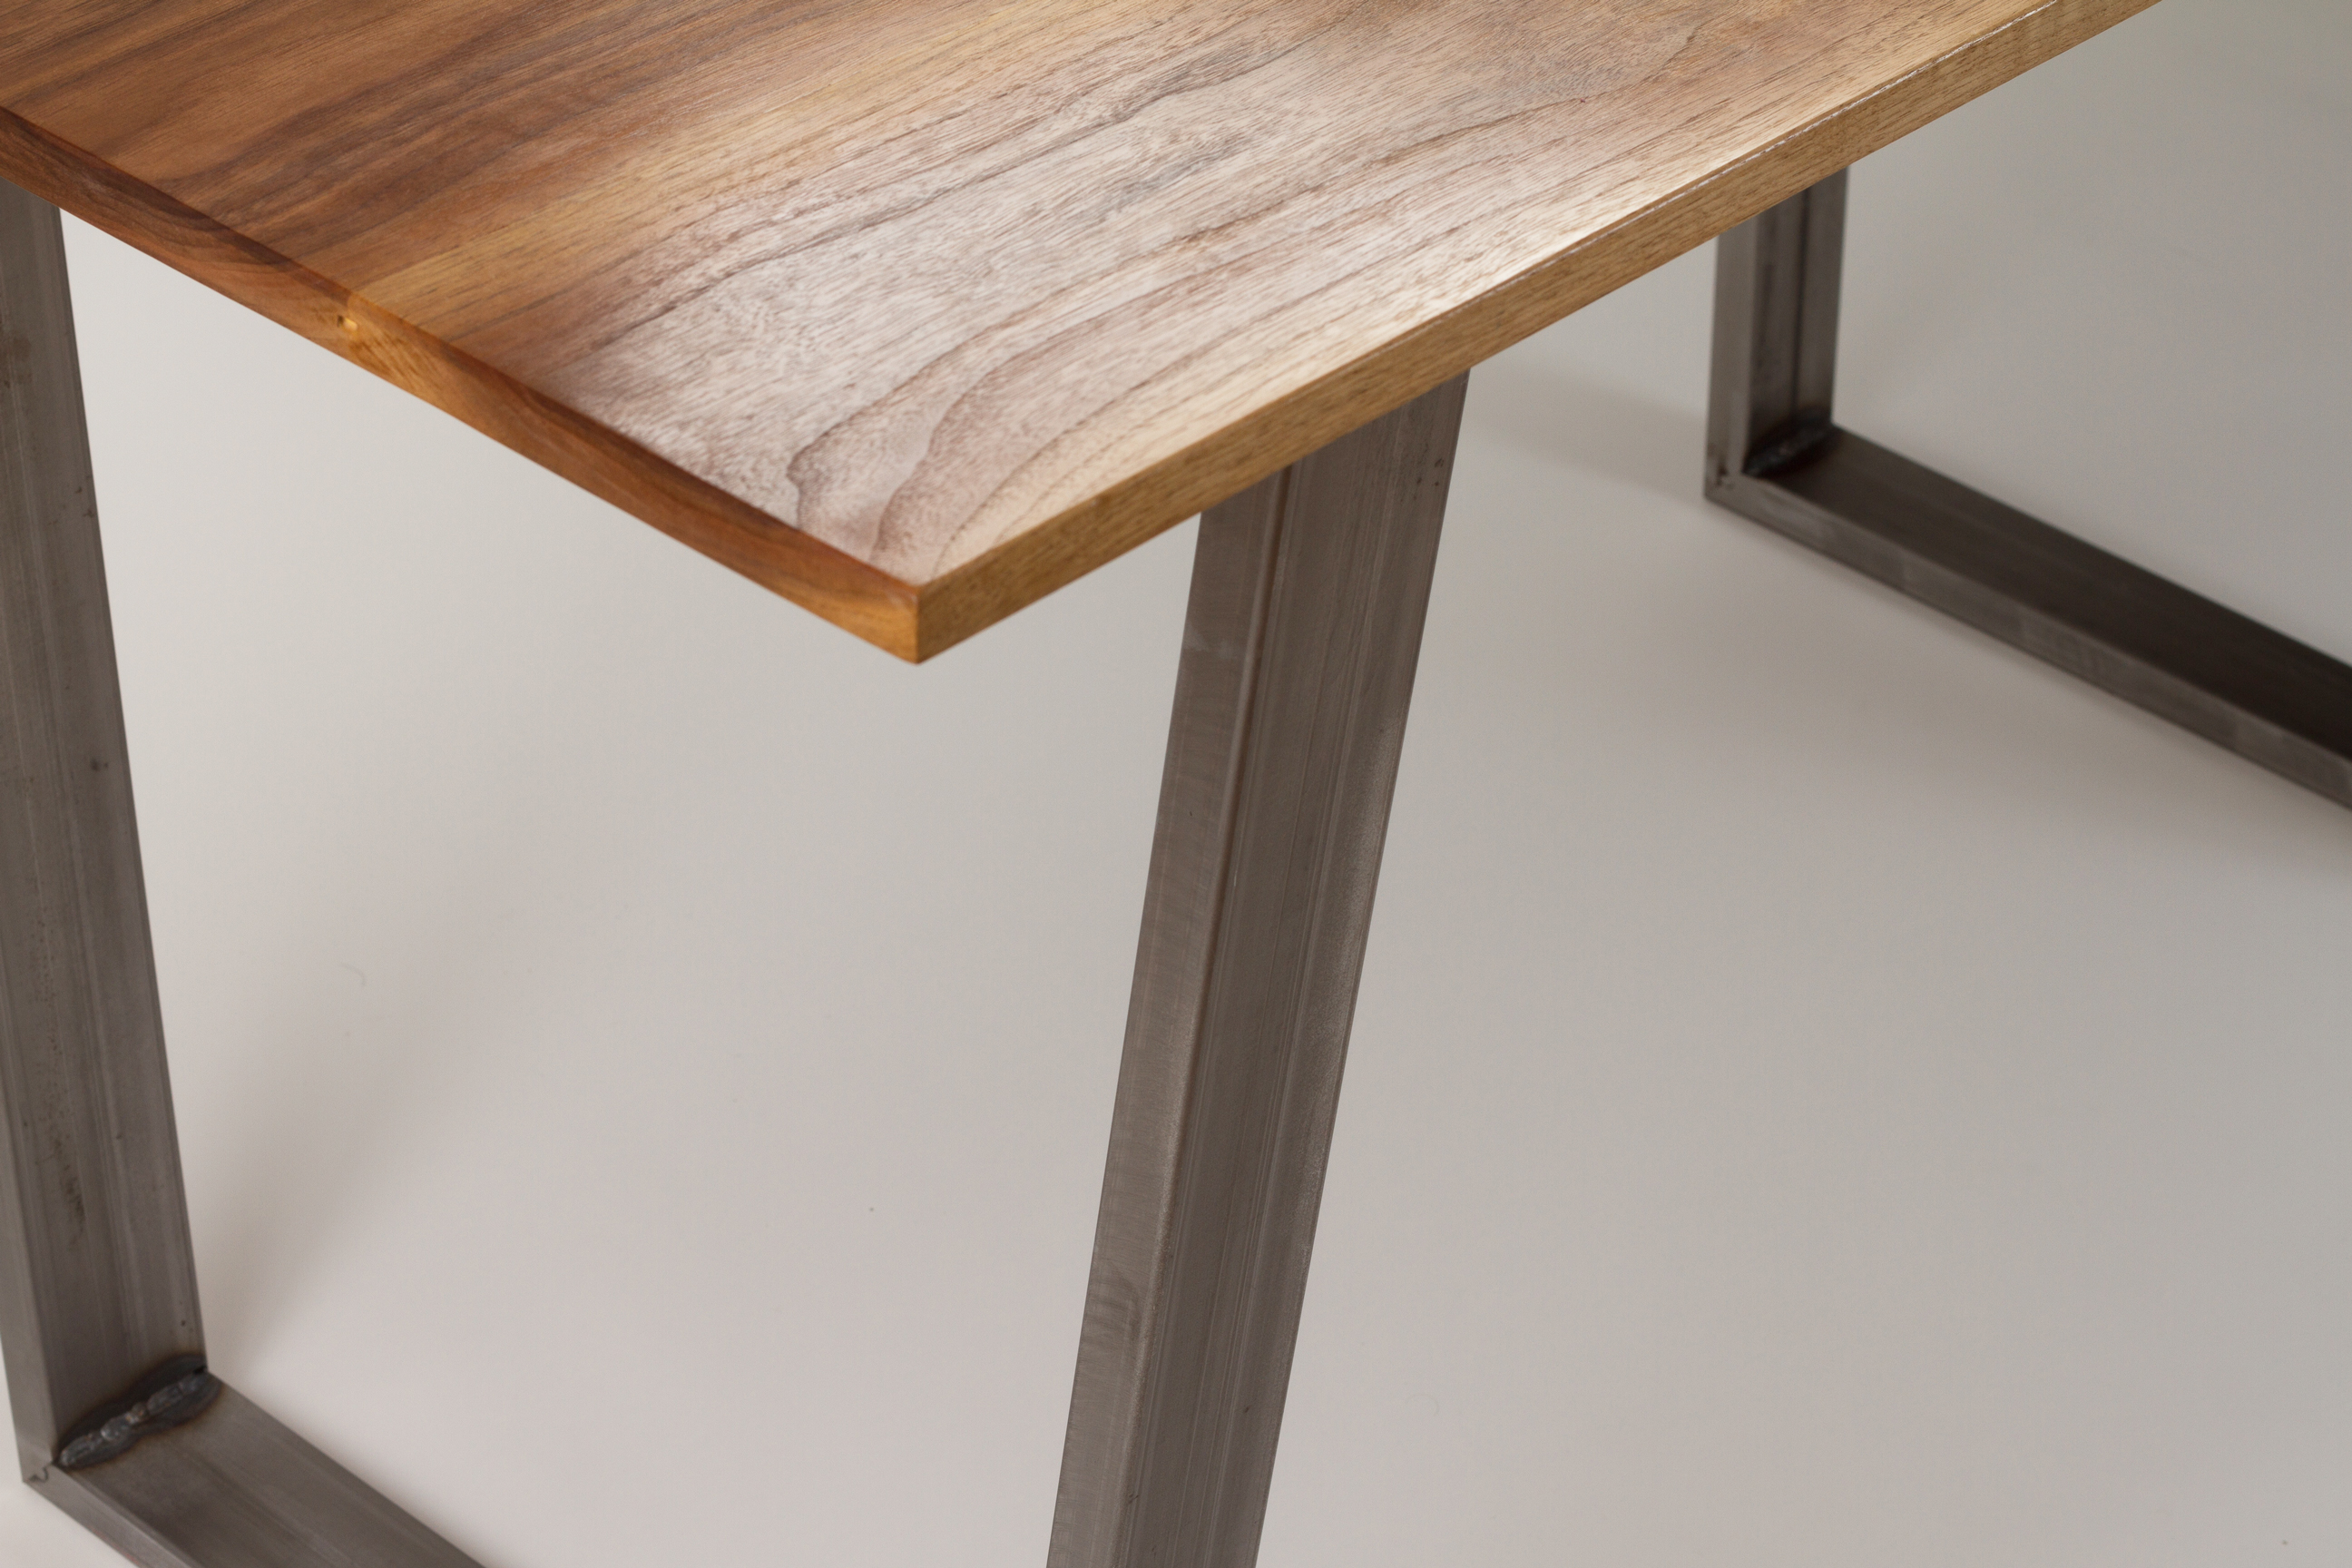 Modern Dining Table Solid Wood and Trapezoid Steel Legs ...